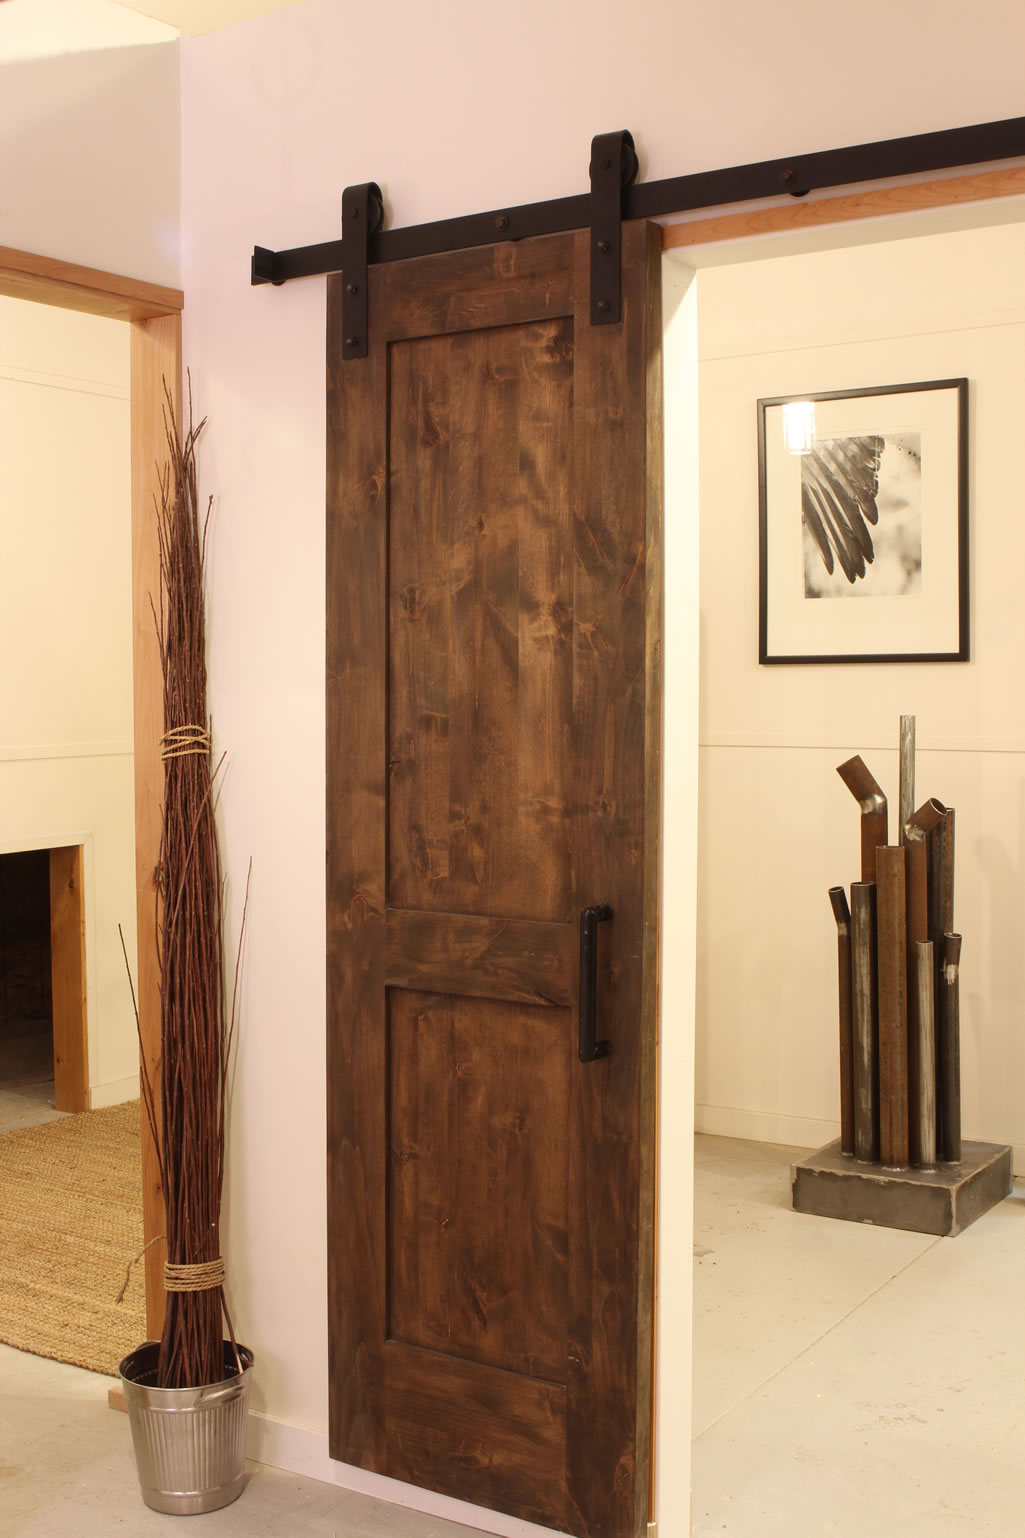 Replacement of interior door hardware change the rooms style